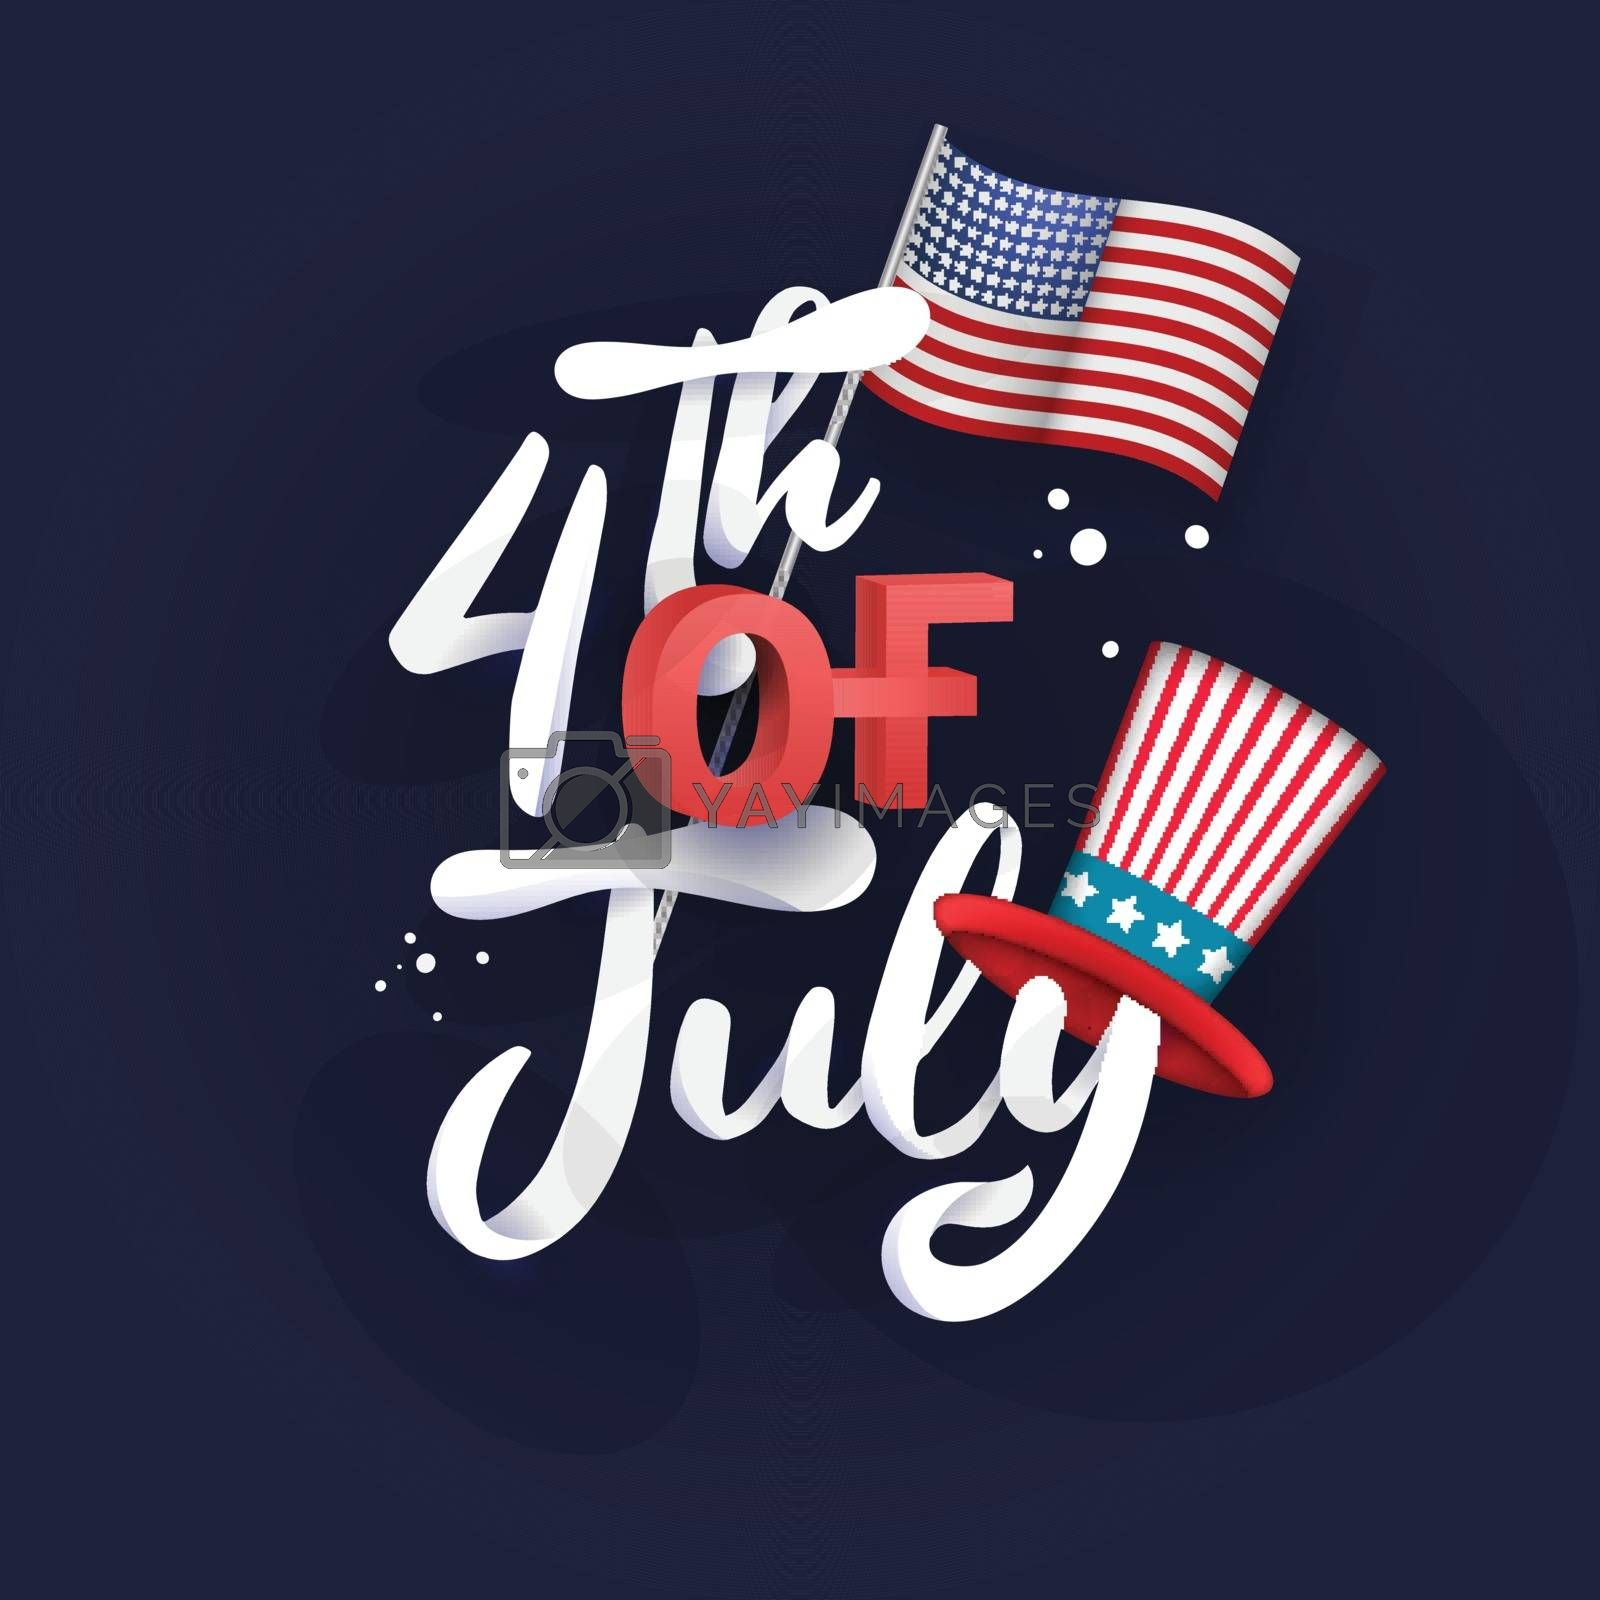 Royalty free image of Stylish calligraphy text 4th of july with American National Flag by aispl